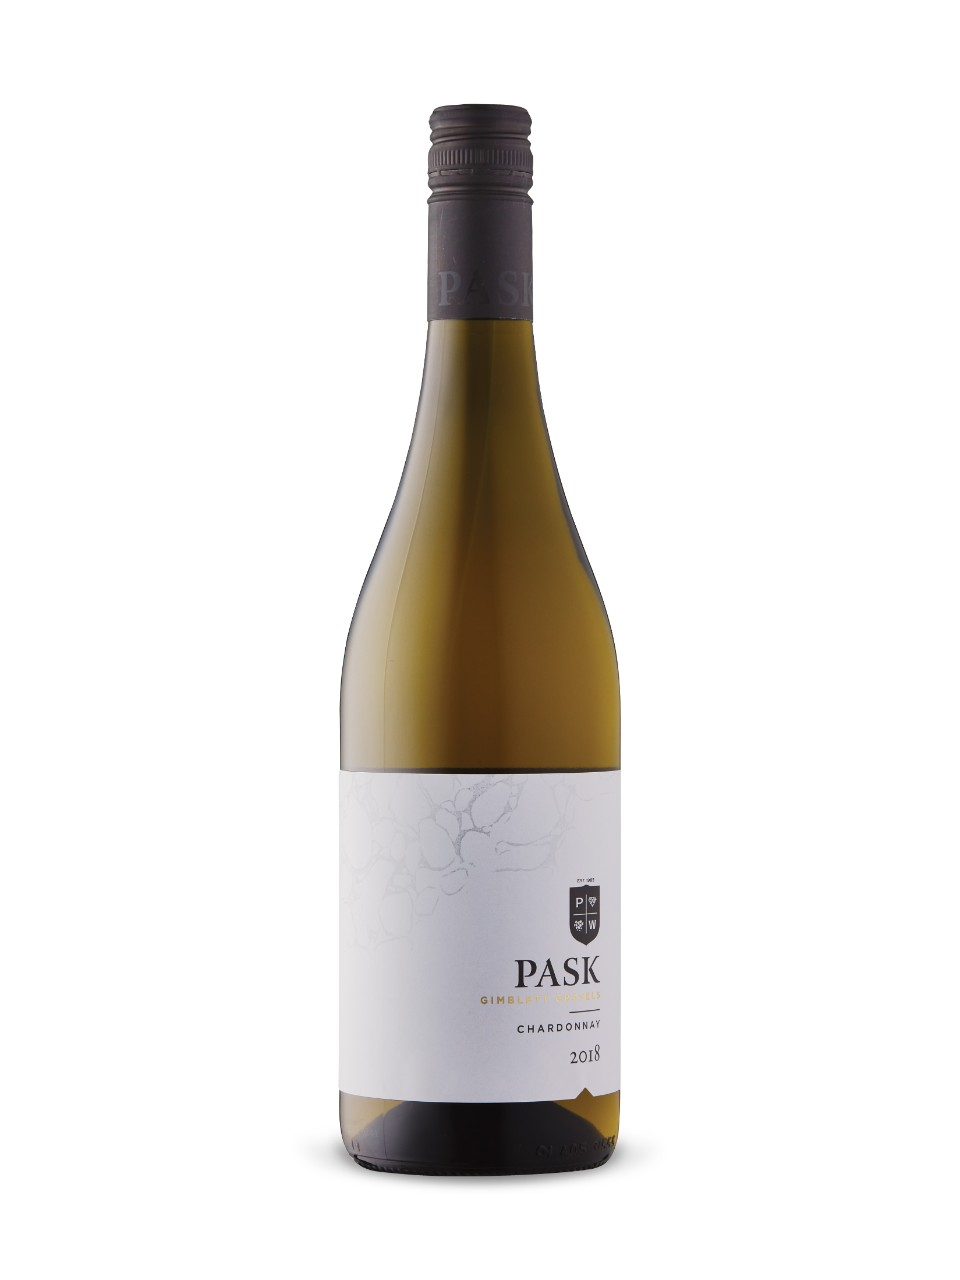 Pask Gimblett Gravels Chardonnay 2018 from LCBO